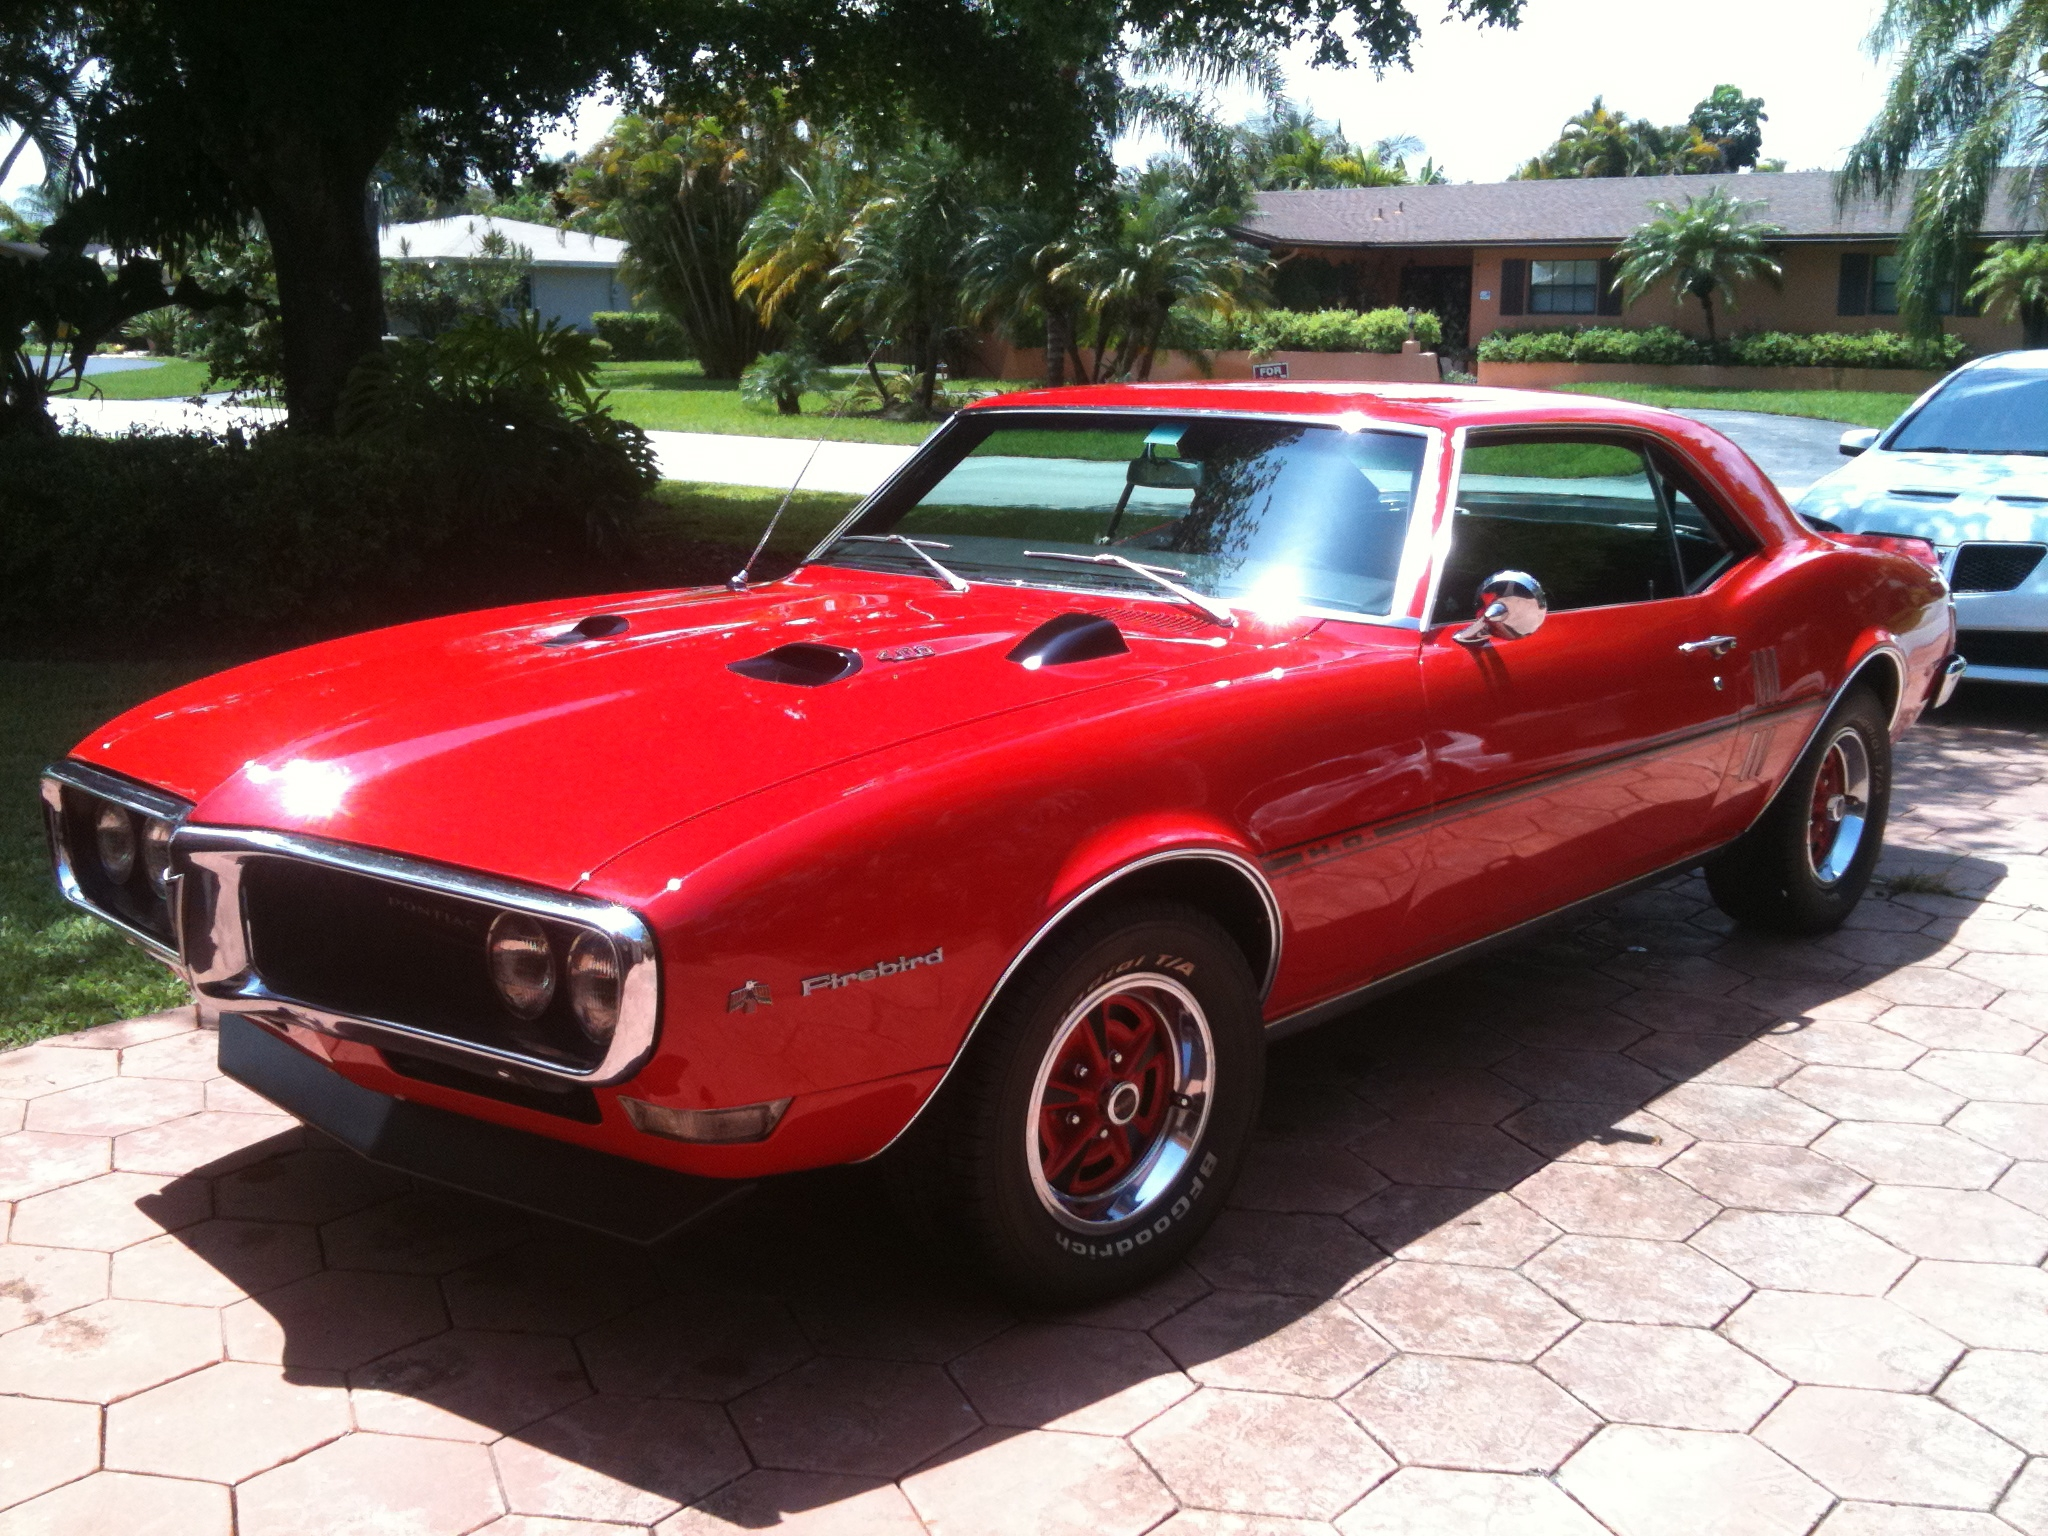 firebird 400 1968 Pontiac Firebird Specs, Photos